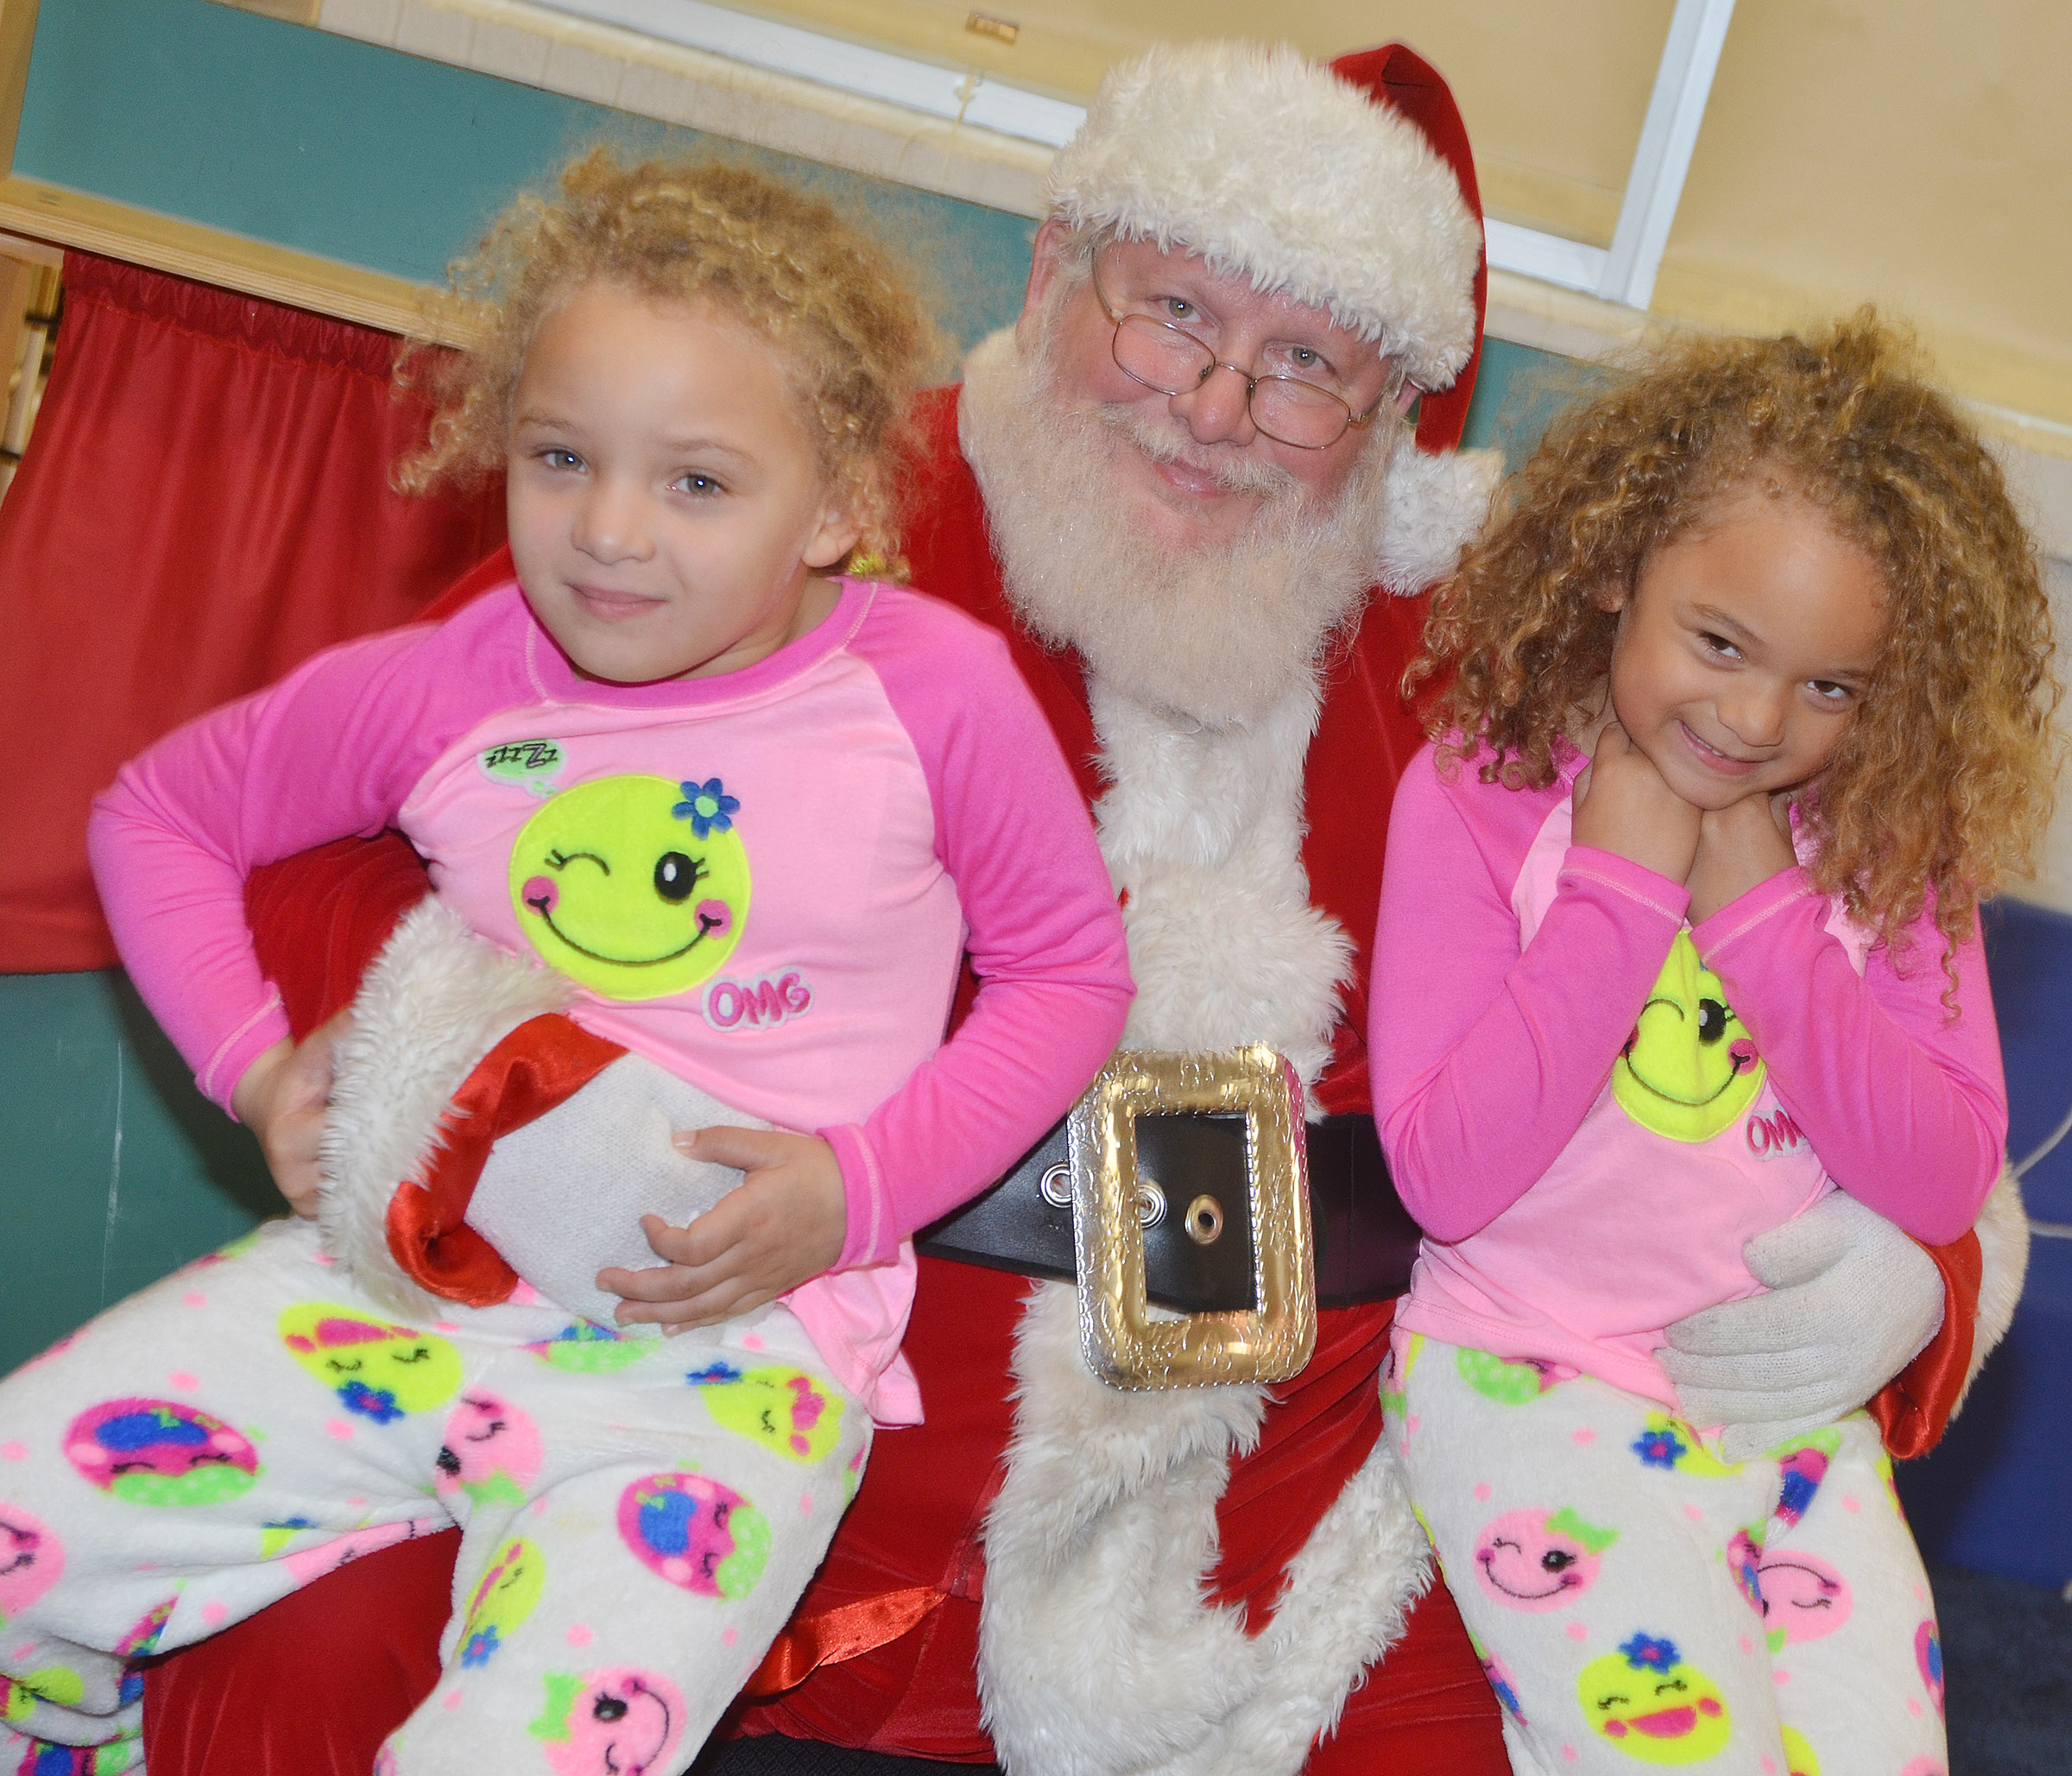 CES preschool students Jayla Barbee, at left, and Layla Barbee smile for a photo with Santa.